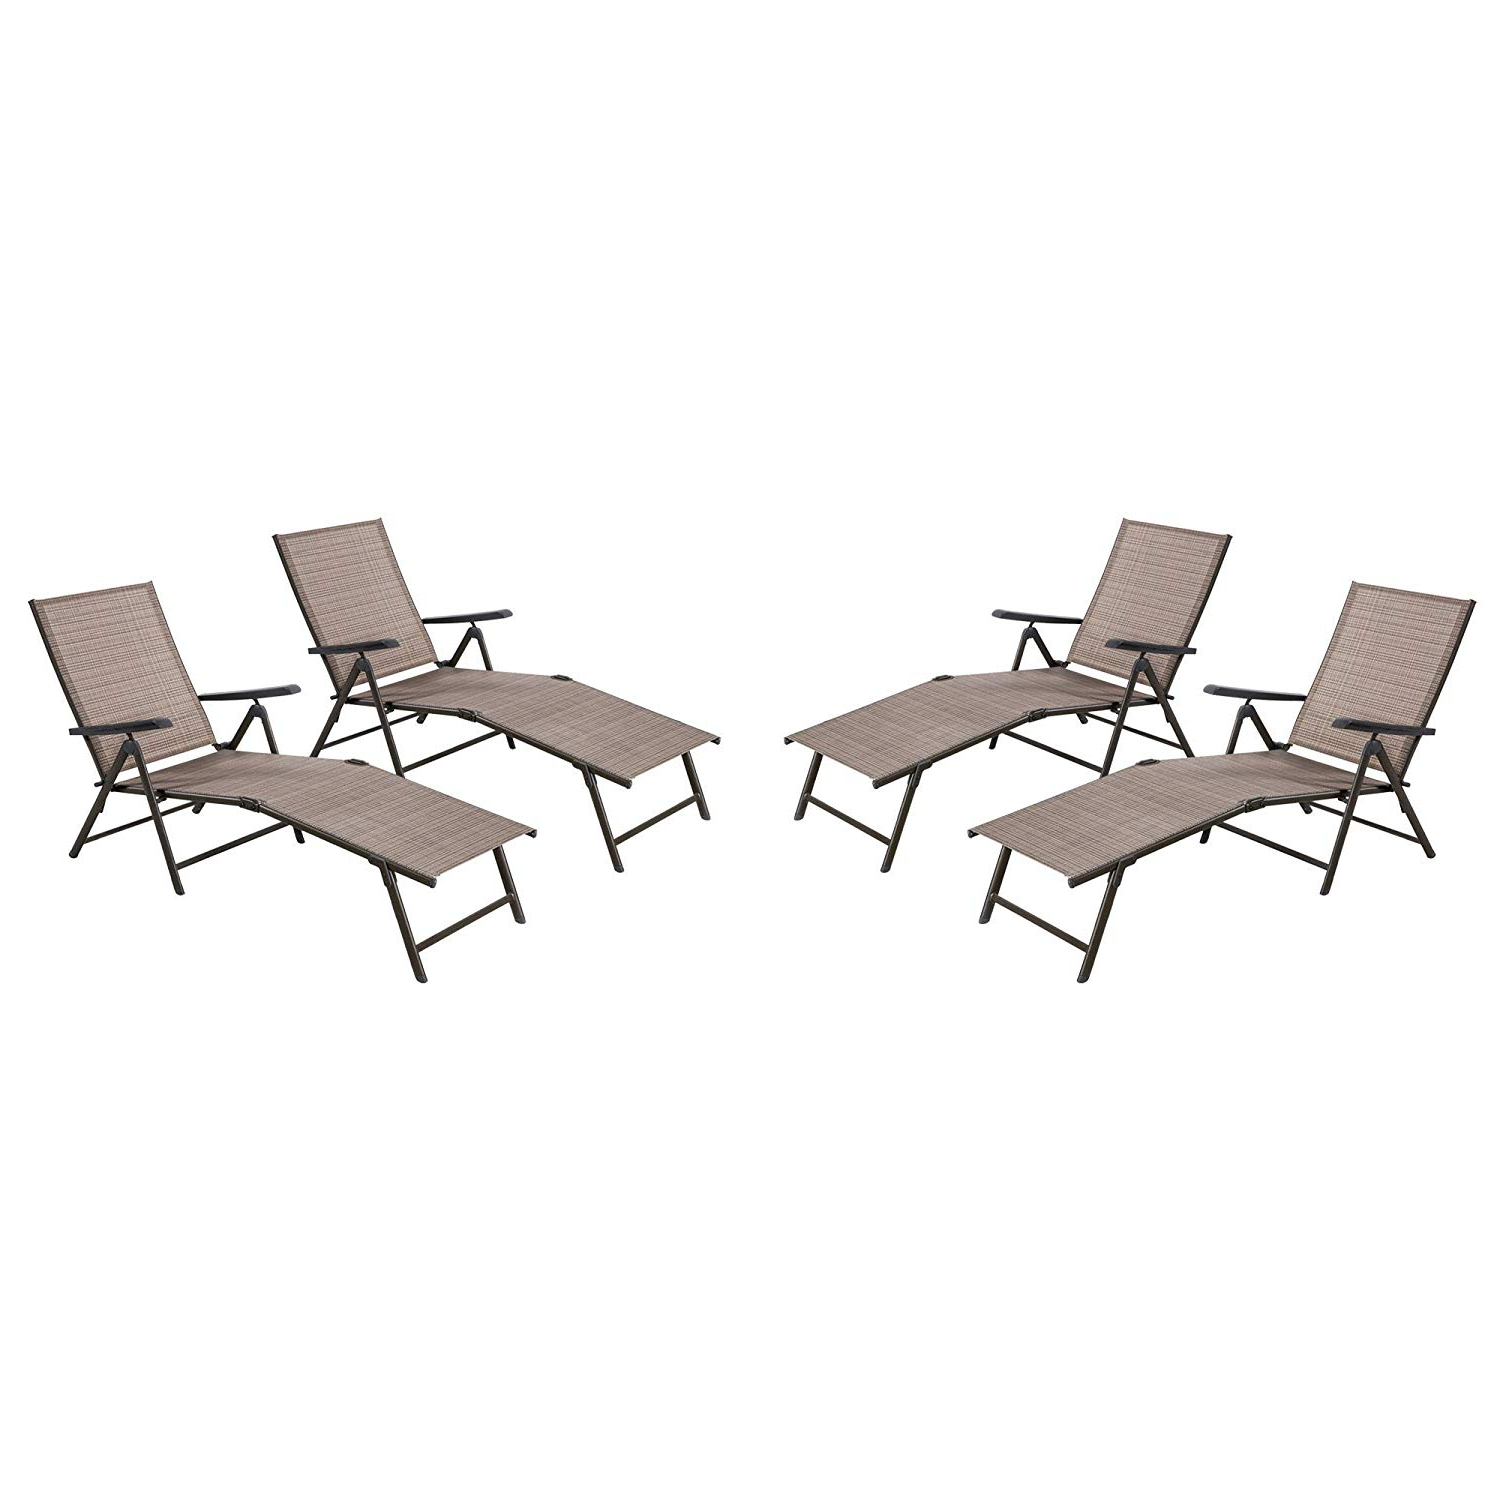 Most Recent Outdoor Yard Pool Recliner Folding Lounge Table Chairs Regarding Cheap Pool Chaise Loungers, Find Pool Chaise Loungers Deals (View 12 of 25)